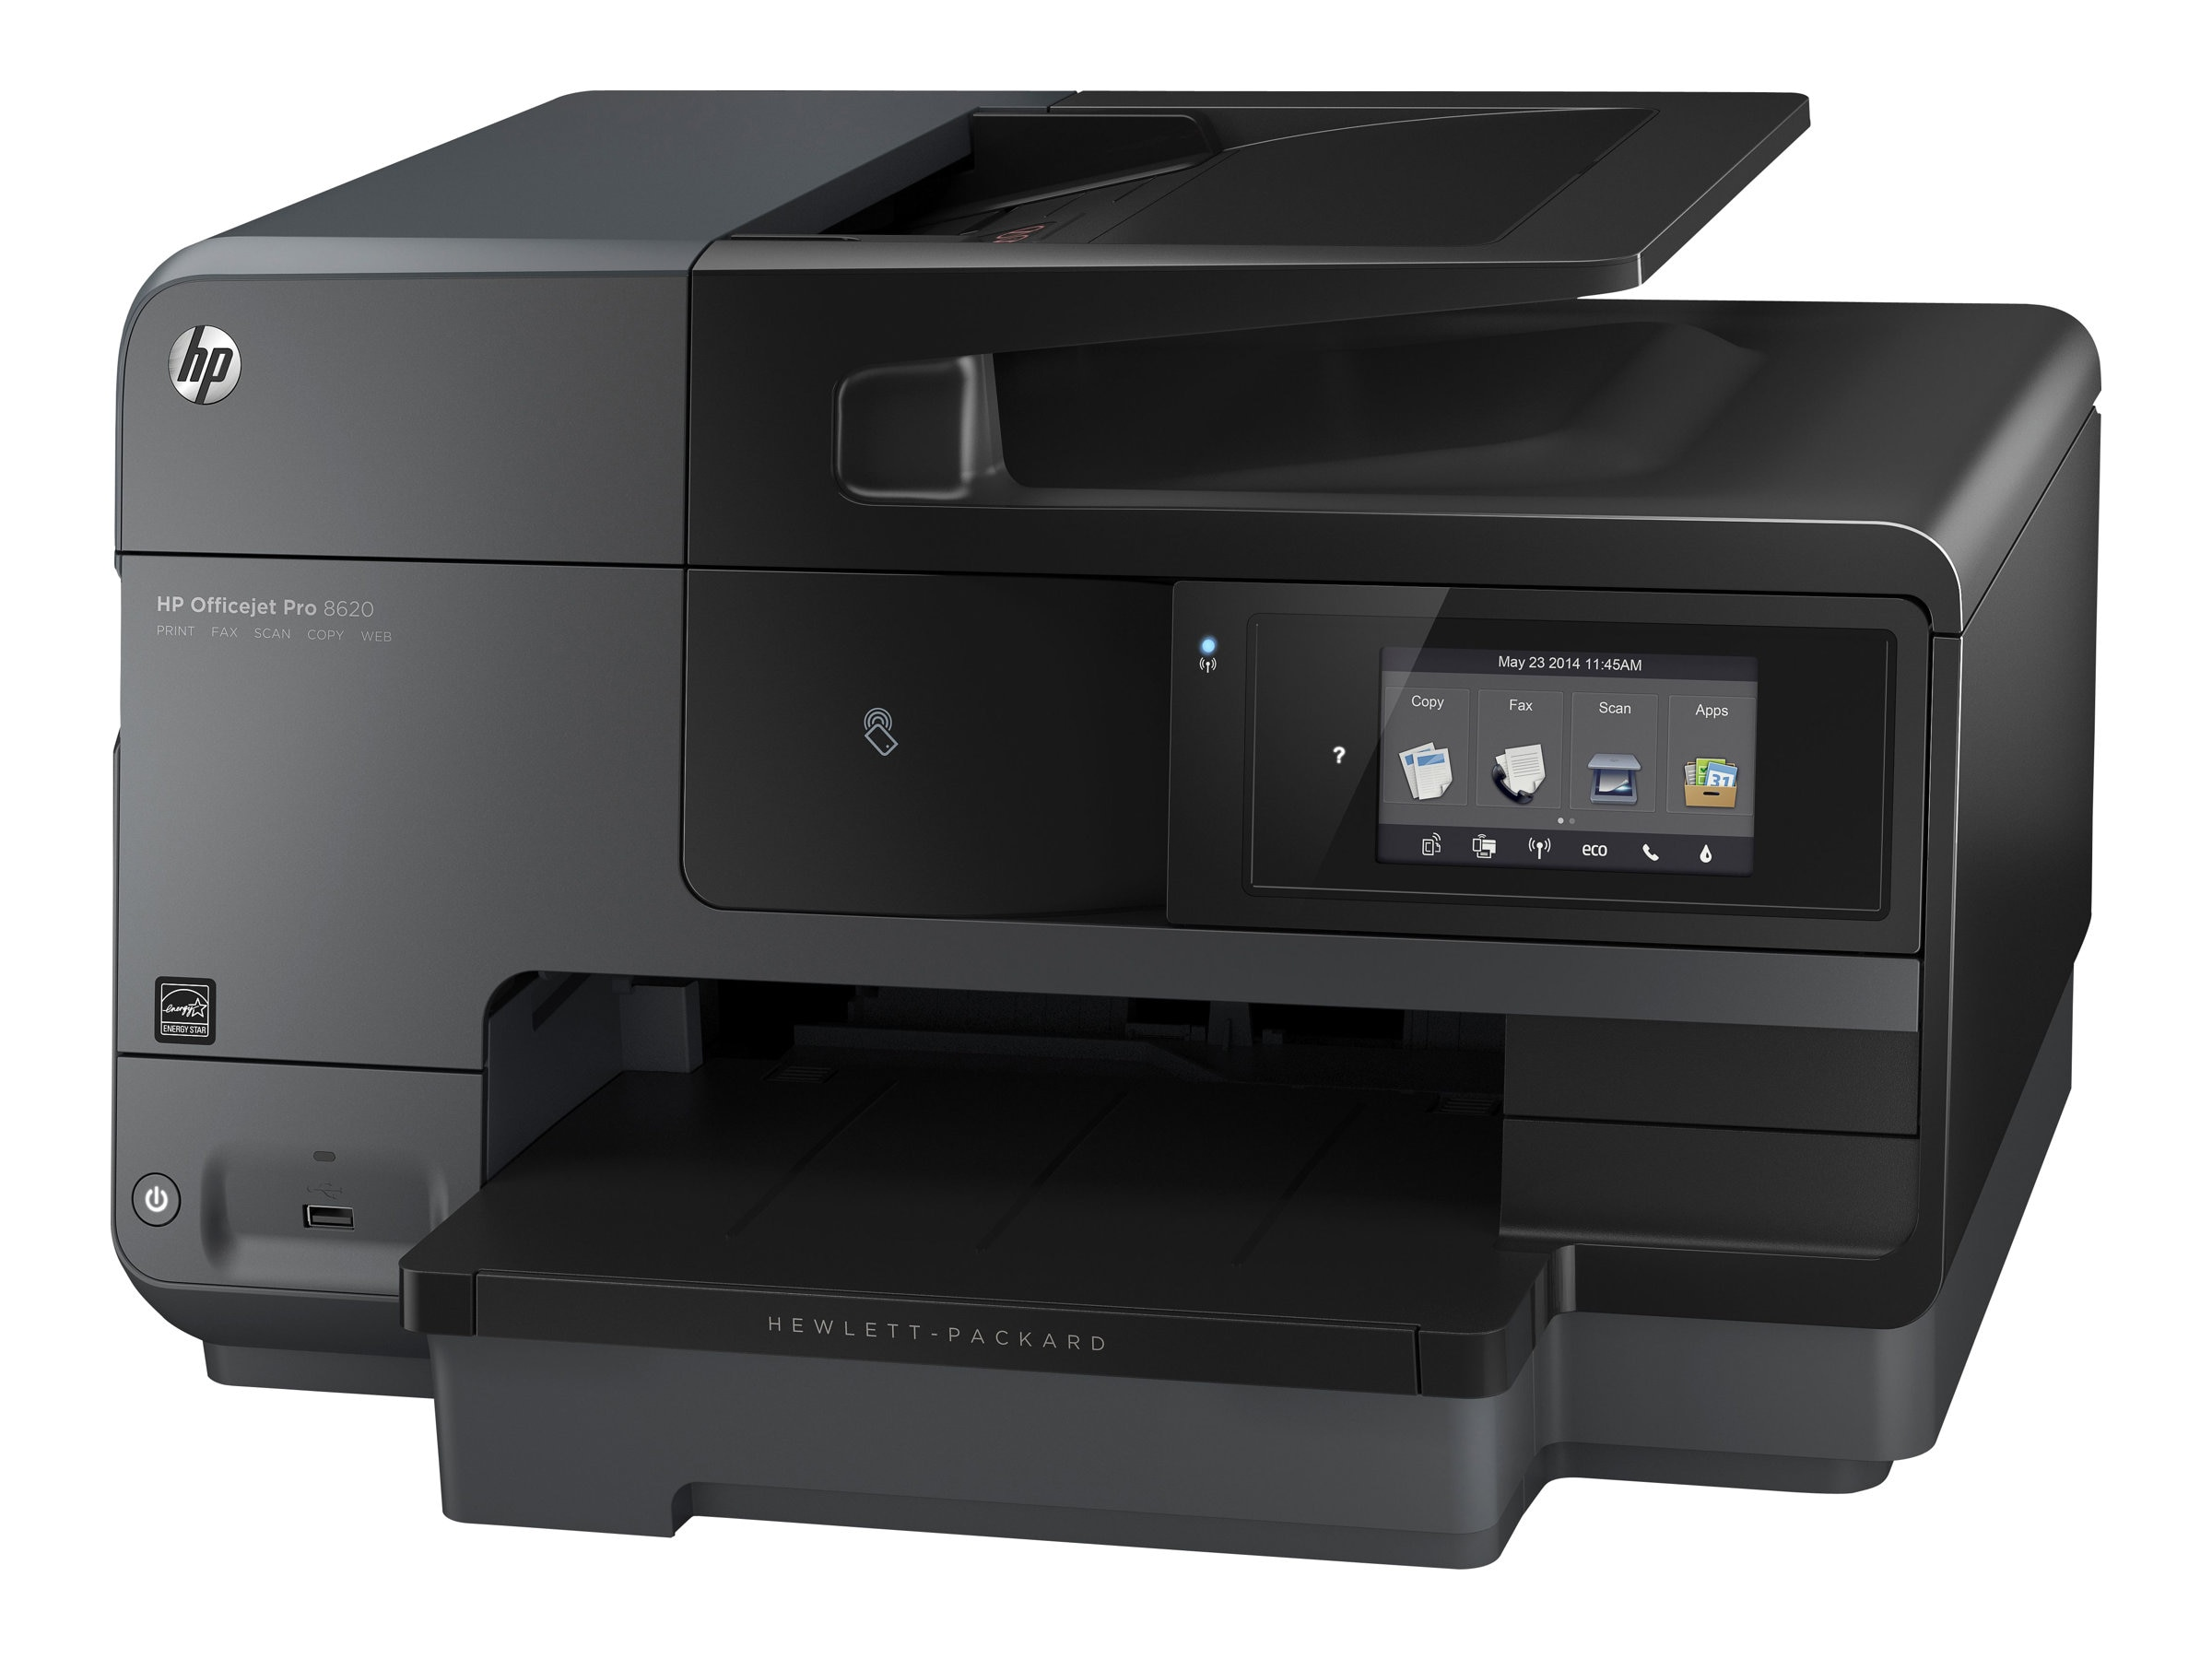 HP Officejet Pro 8620 e-All-in-One Printer ($299.95 - $150 Instant Rebate = $149.95 Expires 4 30), A7F65A#B1H, 16940881, MultiFunction - Ink-Jet